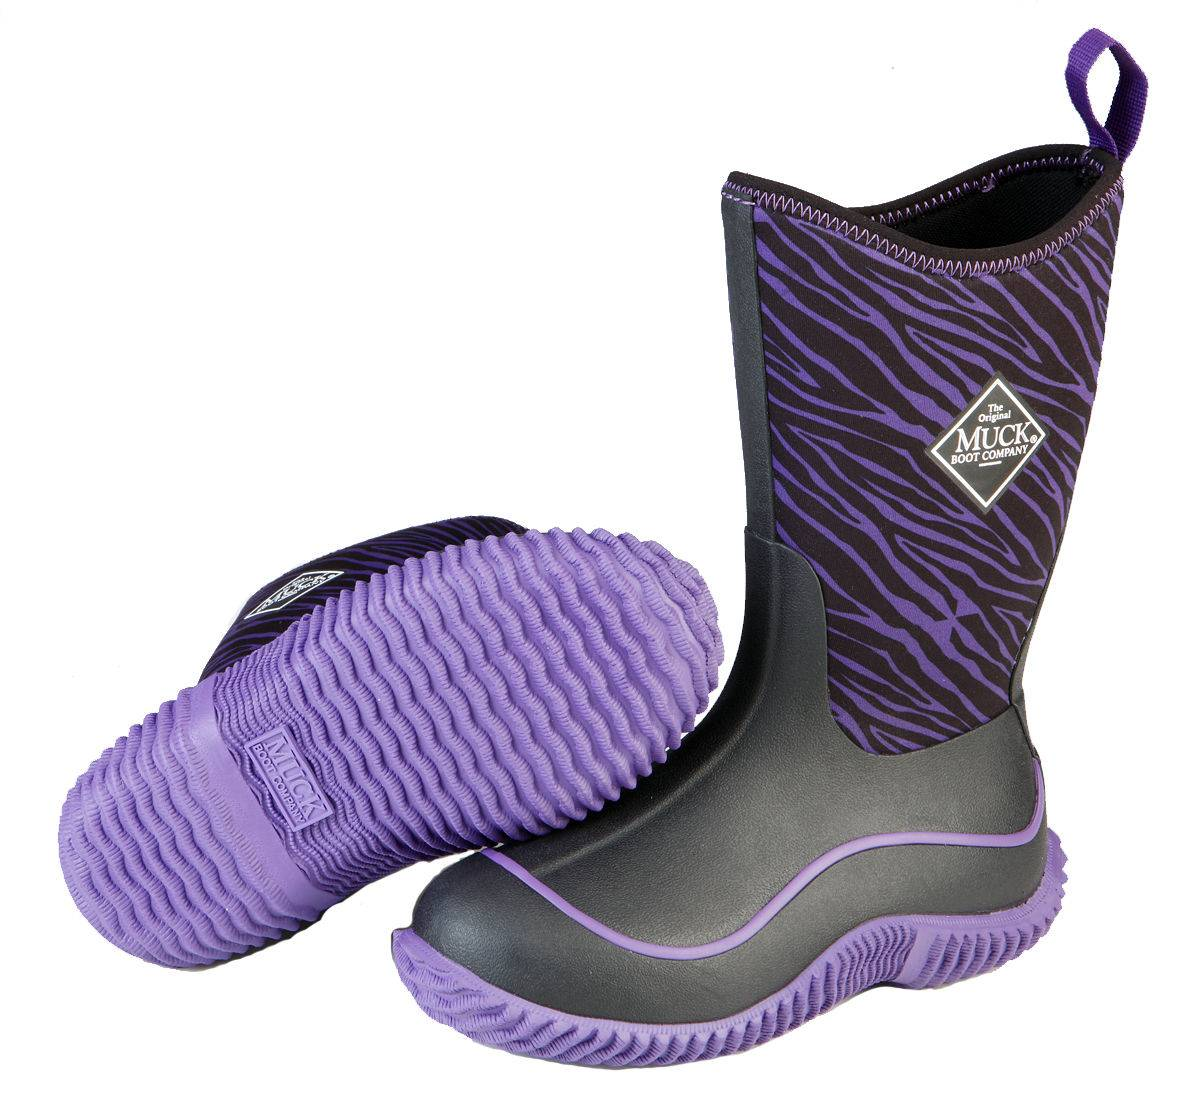 Muck Boots Hale - Kids - Purple Zebra